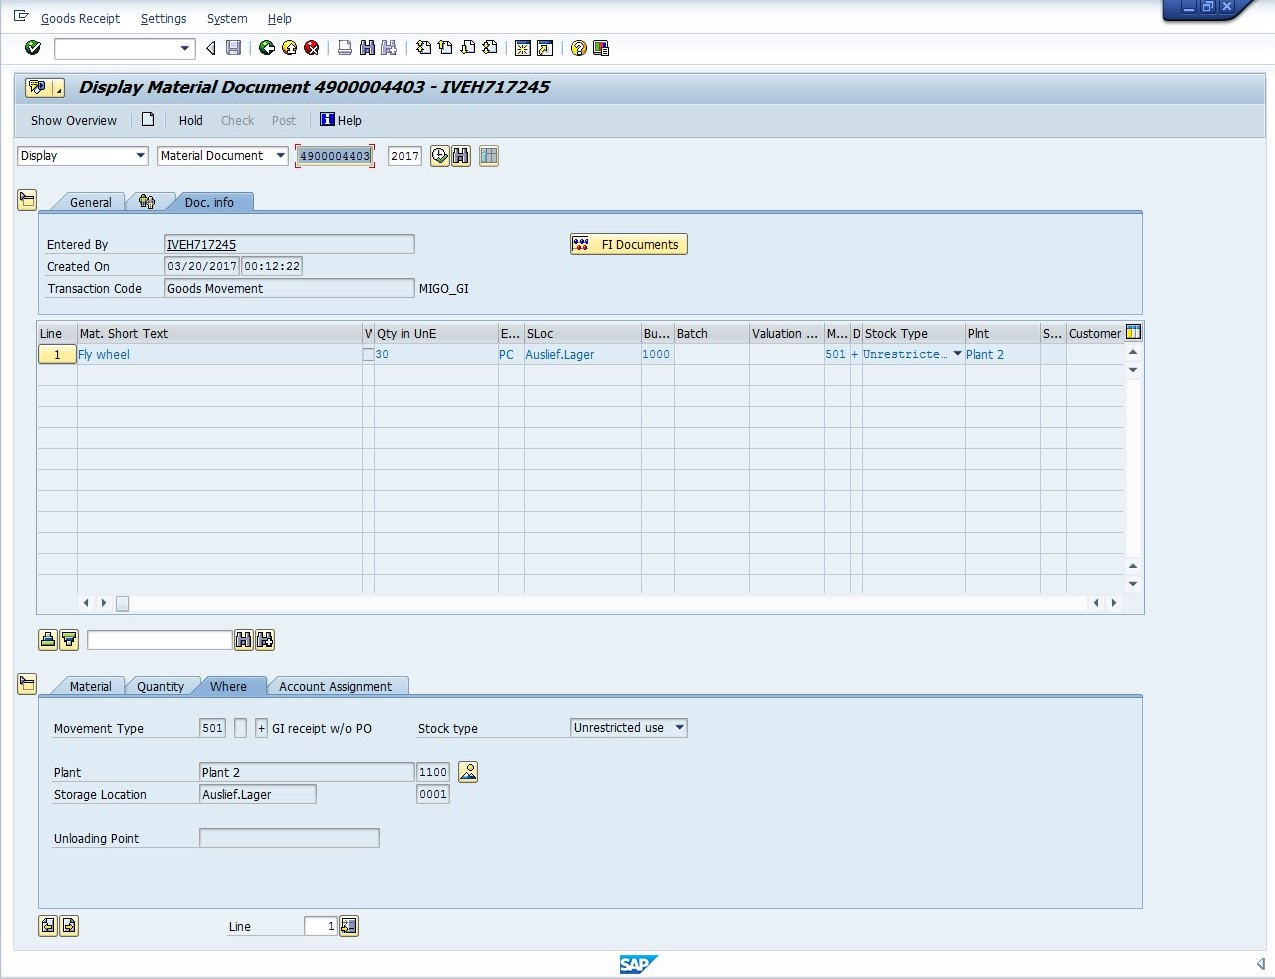 SAP Material Document Display